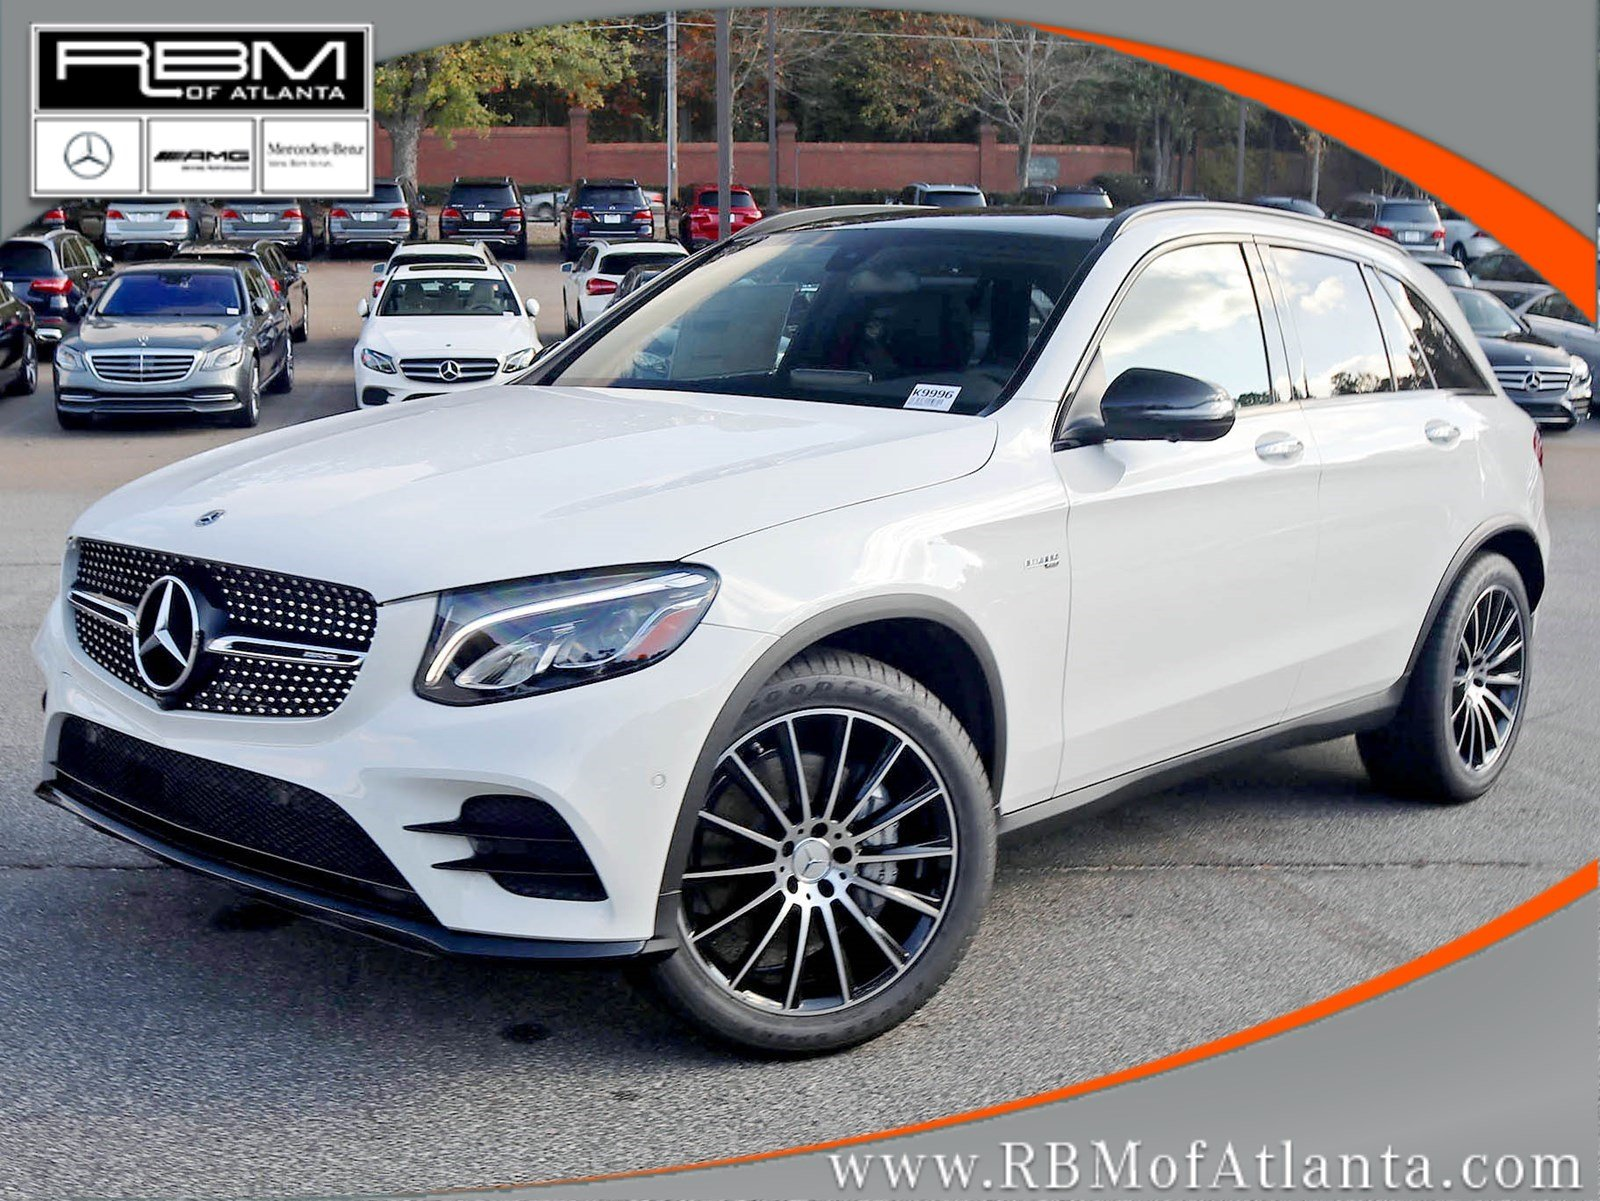 New 2018 mercedes benz glc amg glc 43 suv in atlanta for Mercedes benz customer service email address